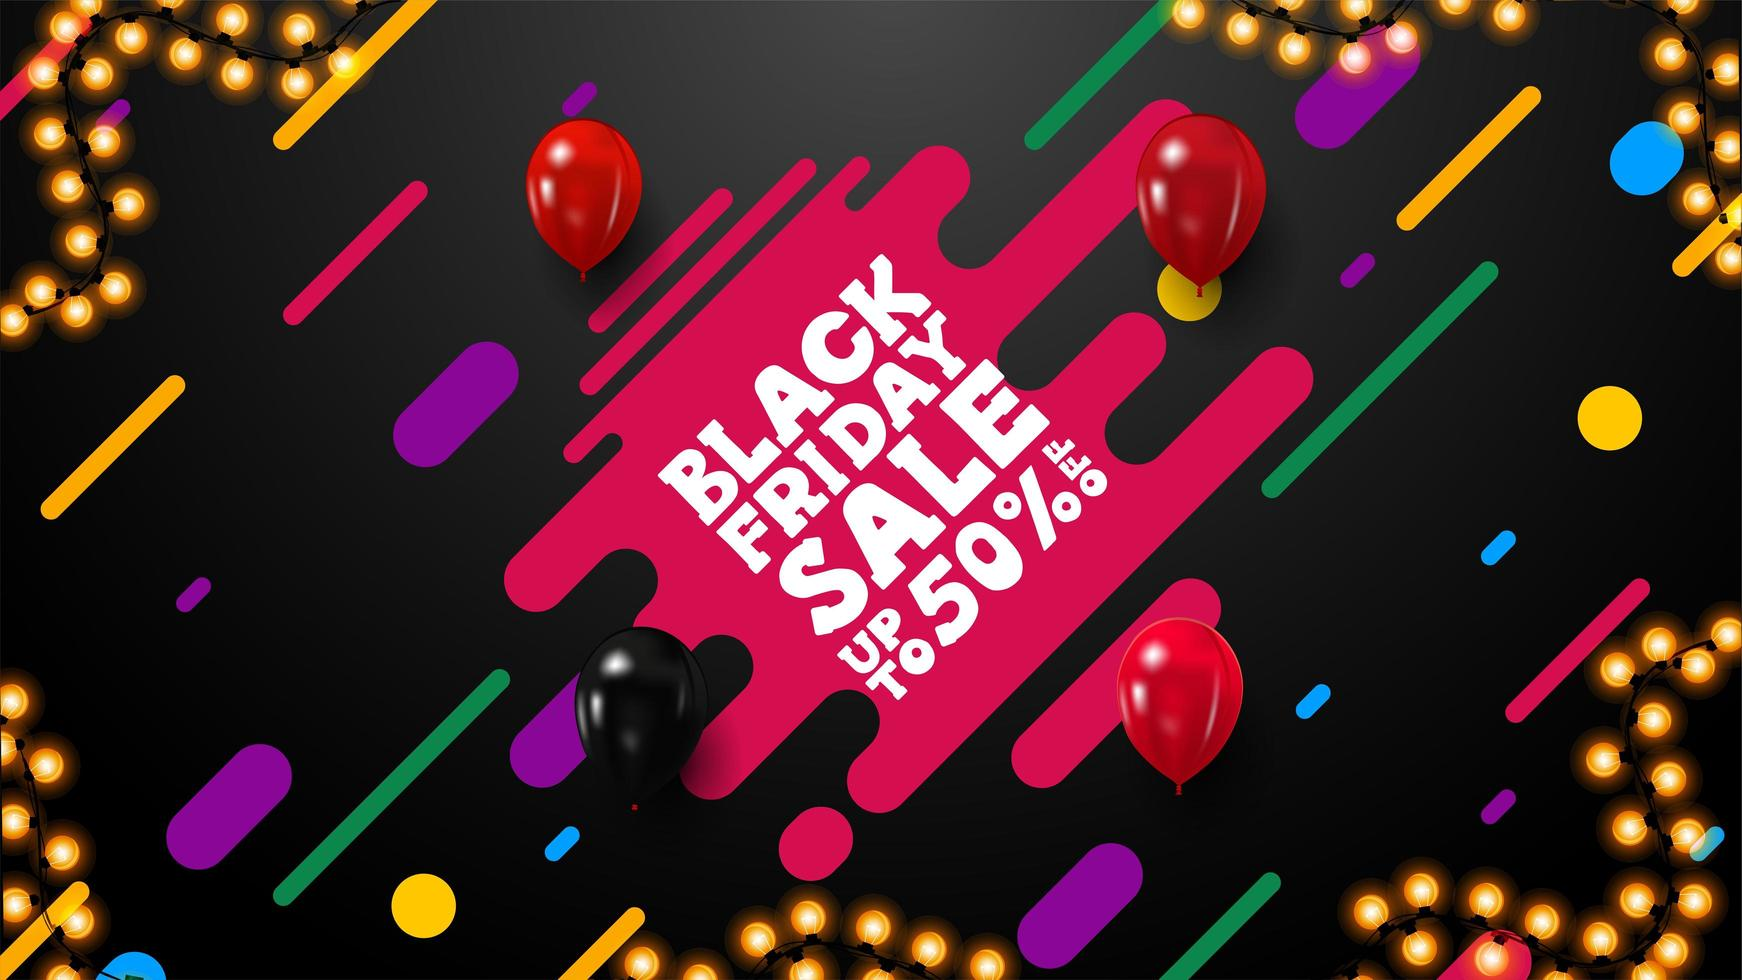 Black Friday sale banner with diagonal colored shapes vector